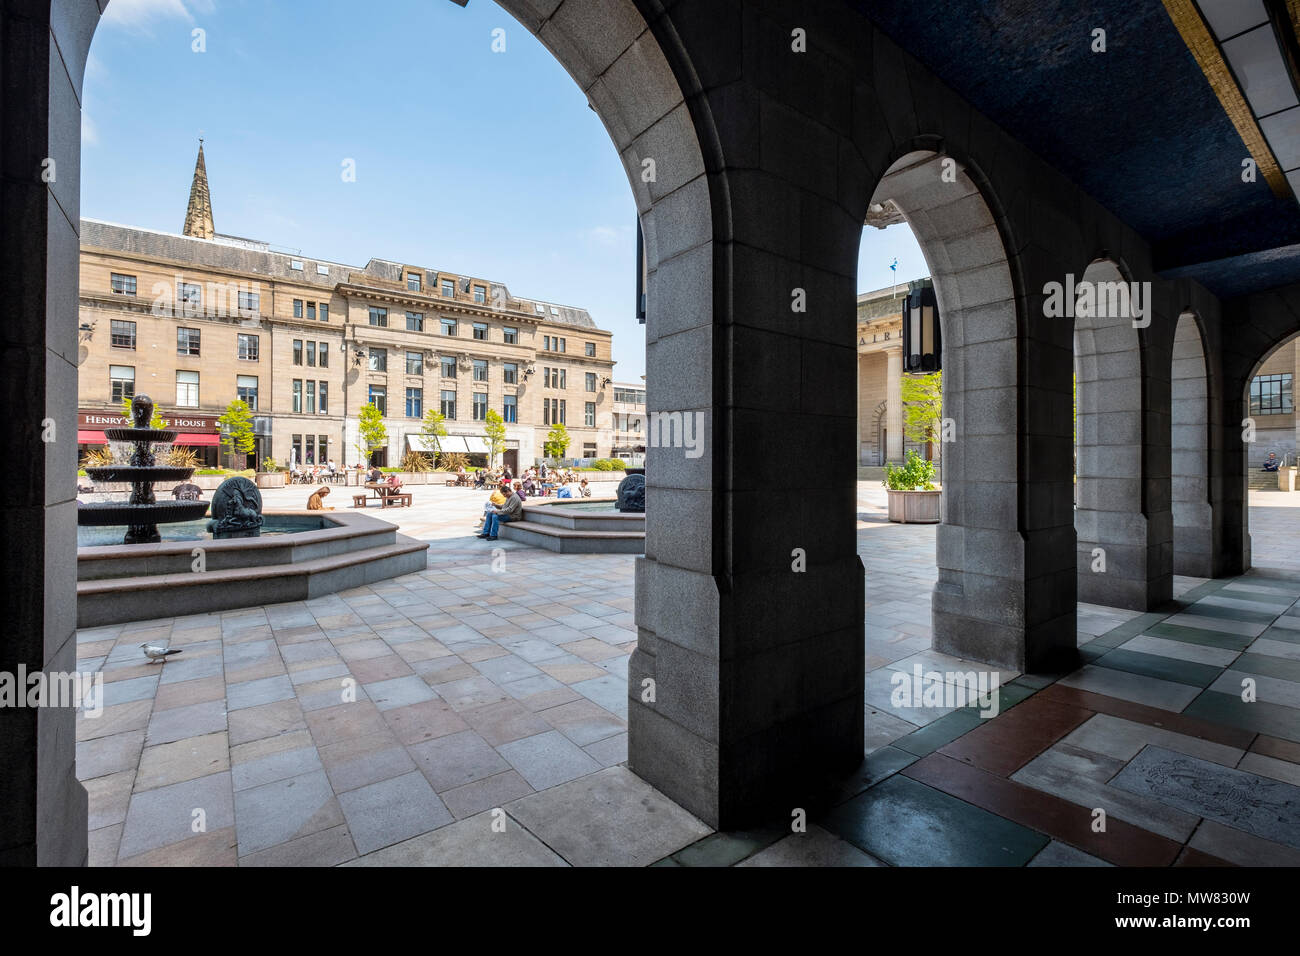 View of the City Square in Dundee, Scotland, UK - Stock Image